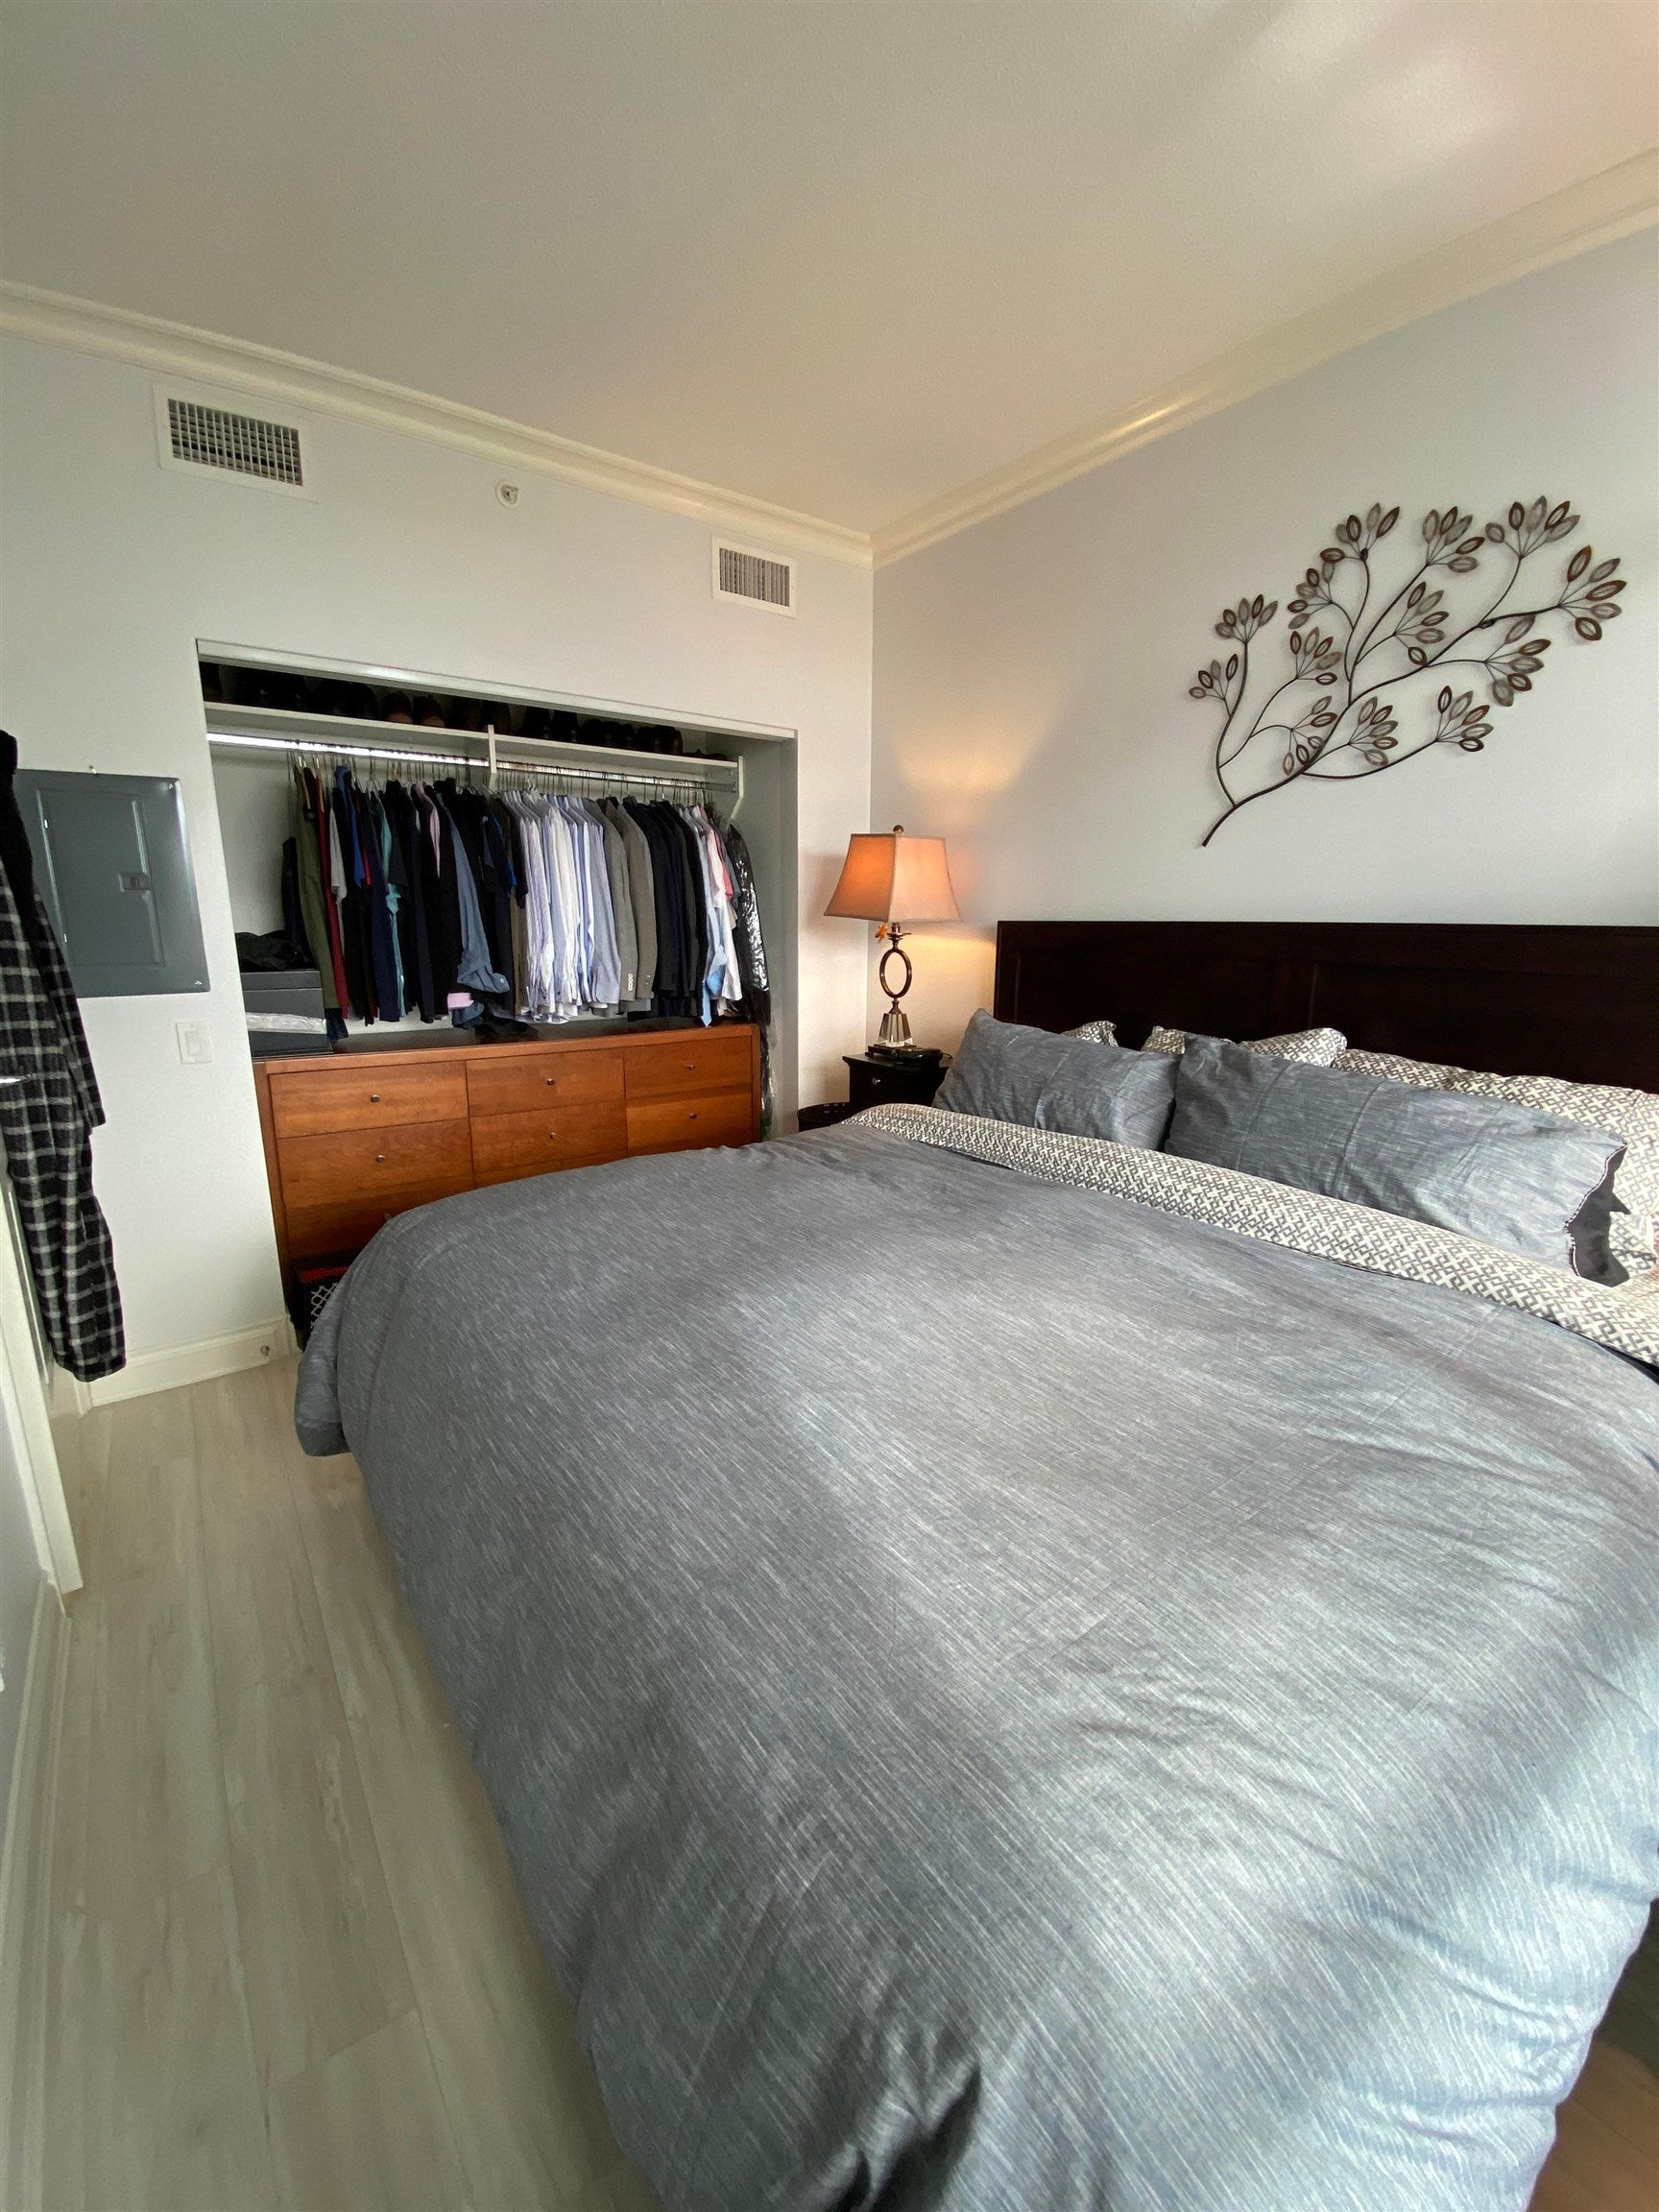 403 172 VICTORY SHIP WAY - Lower Lonsdale Apartment/Condo for sale, 1 Bedroom (R2625786) - #13